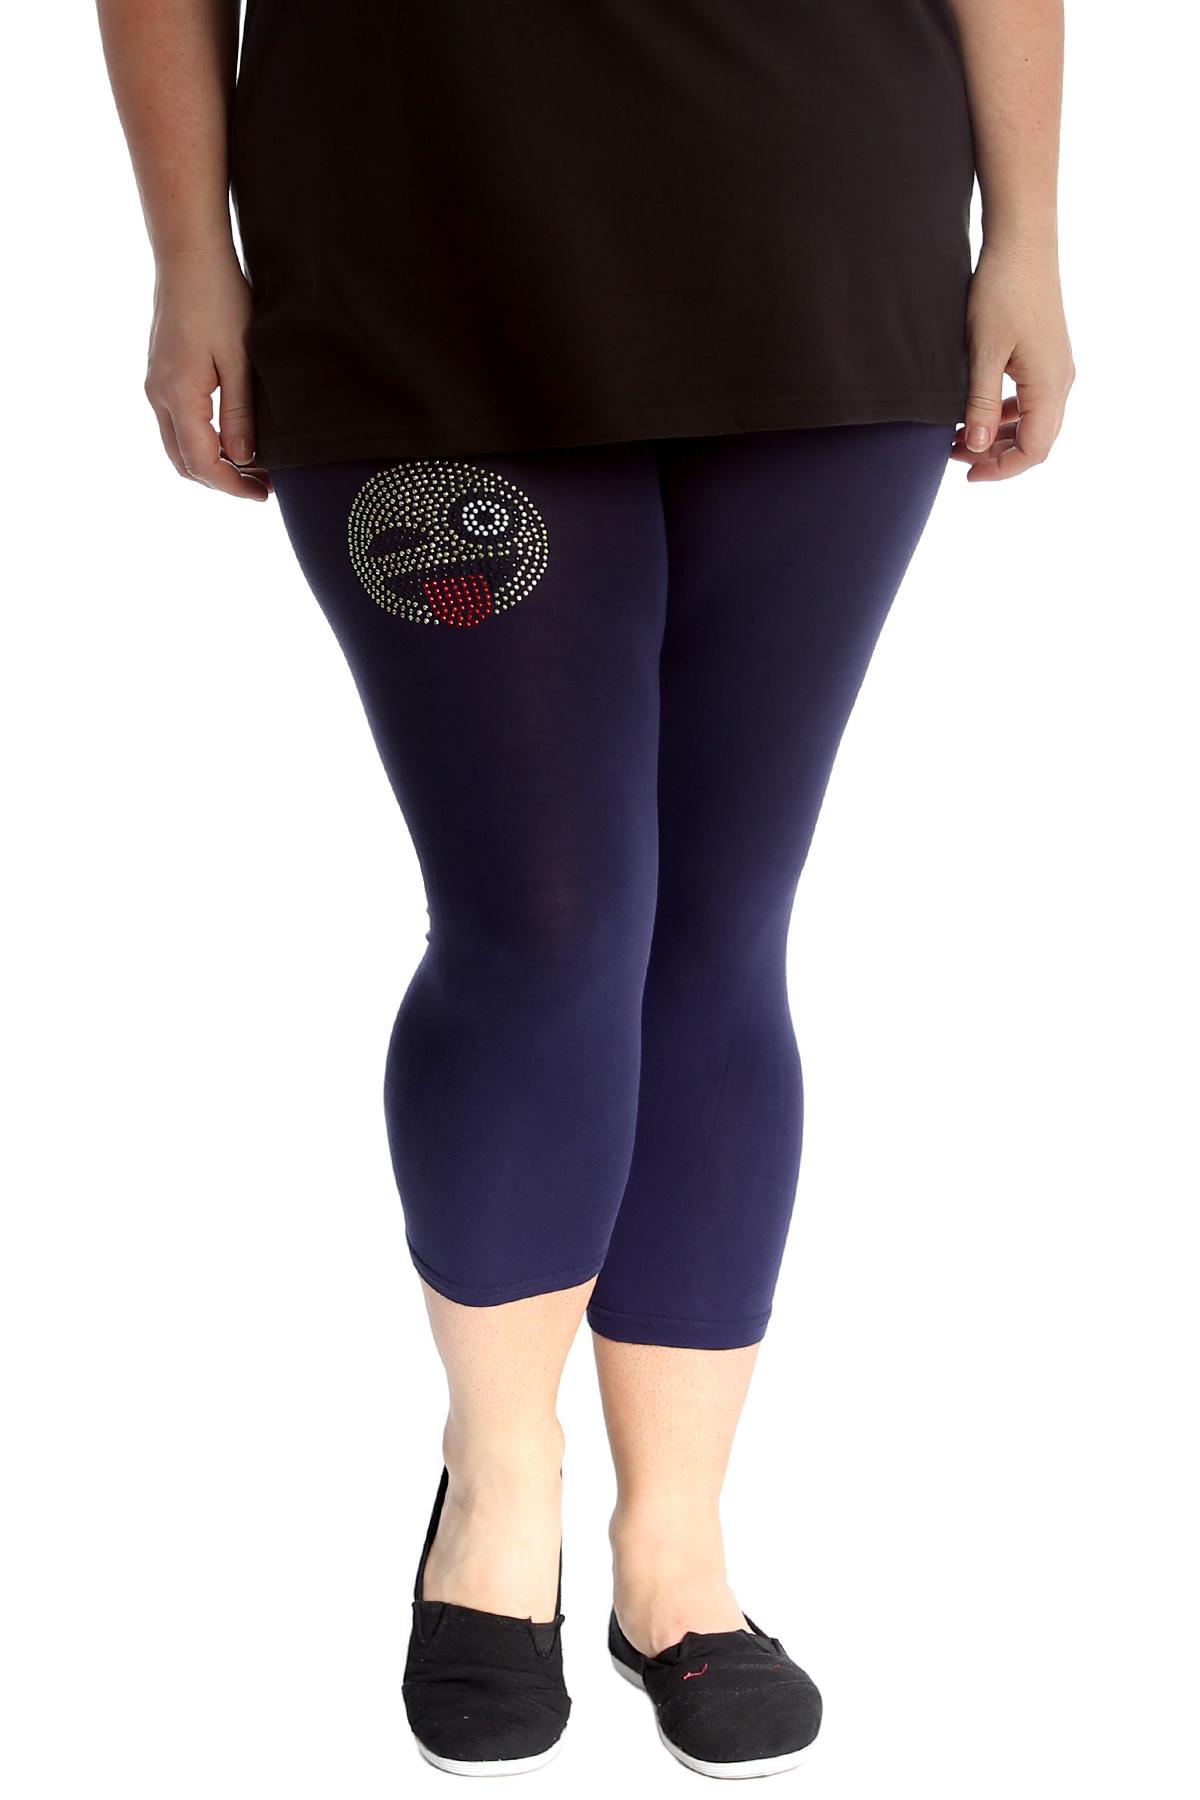 Ladies Plus Size Leggings Womens Butterfly Stud Cuffs Cropped Length Nouvelle